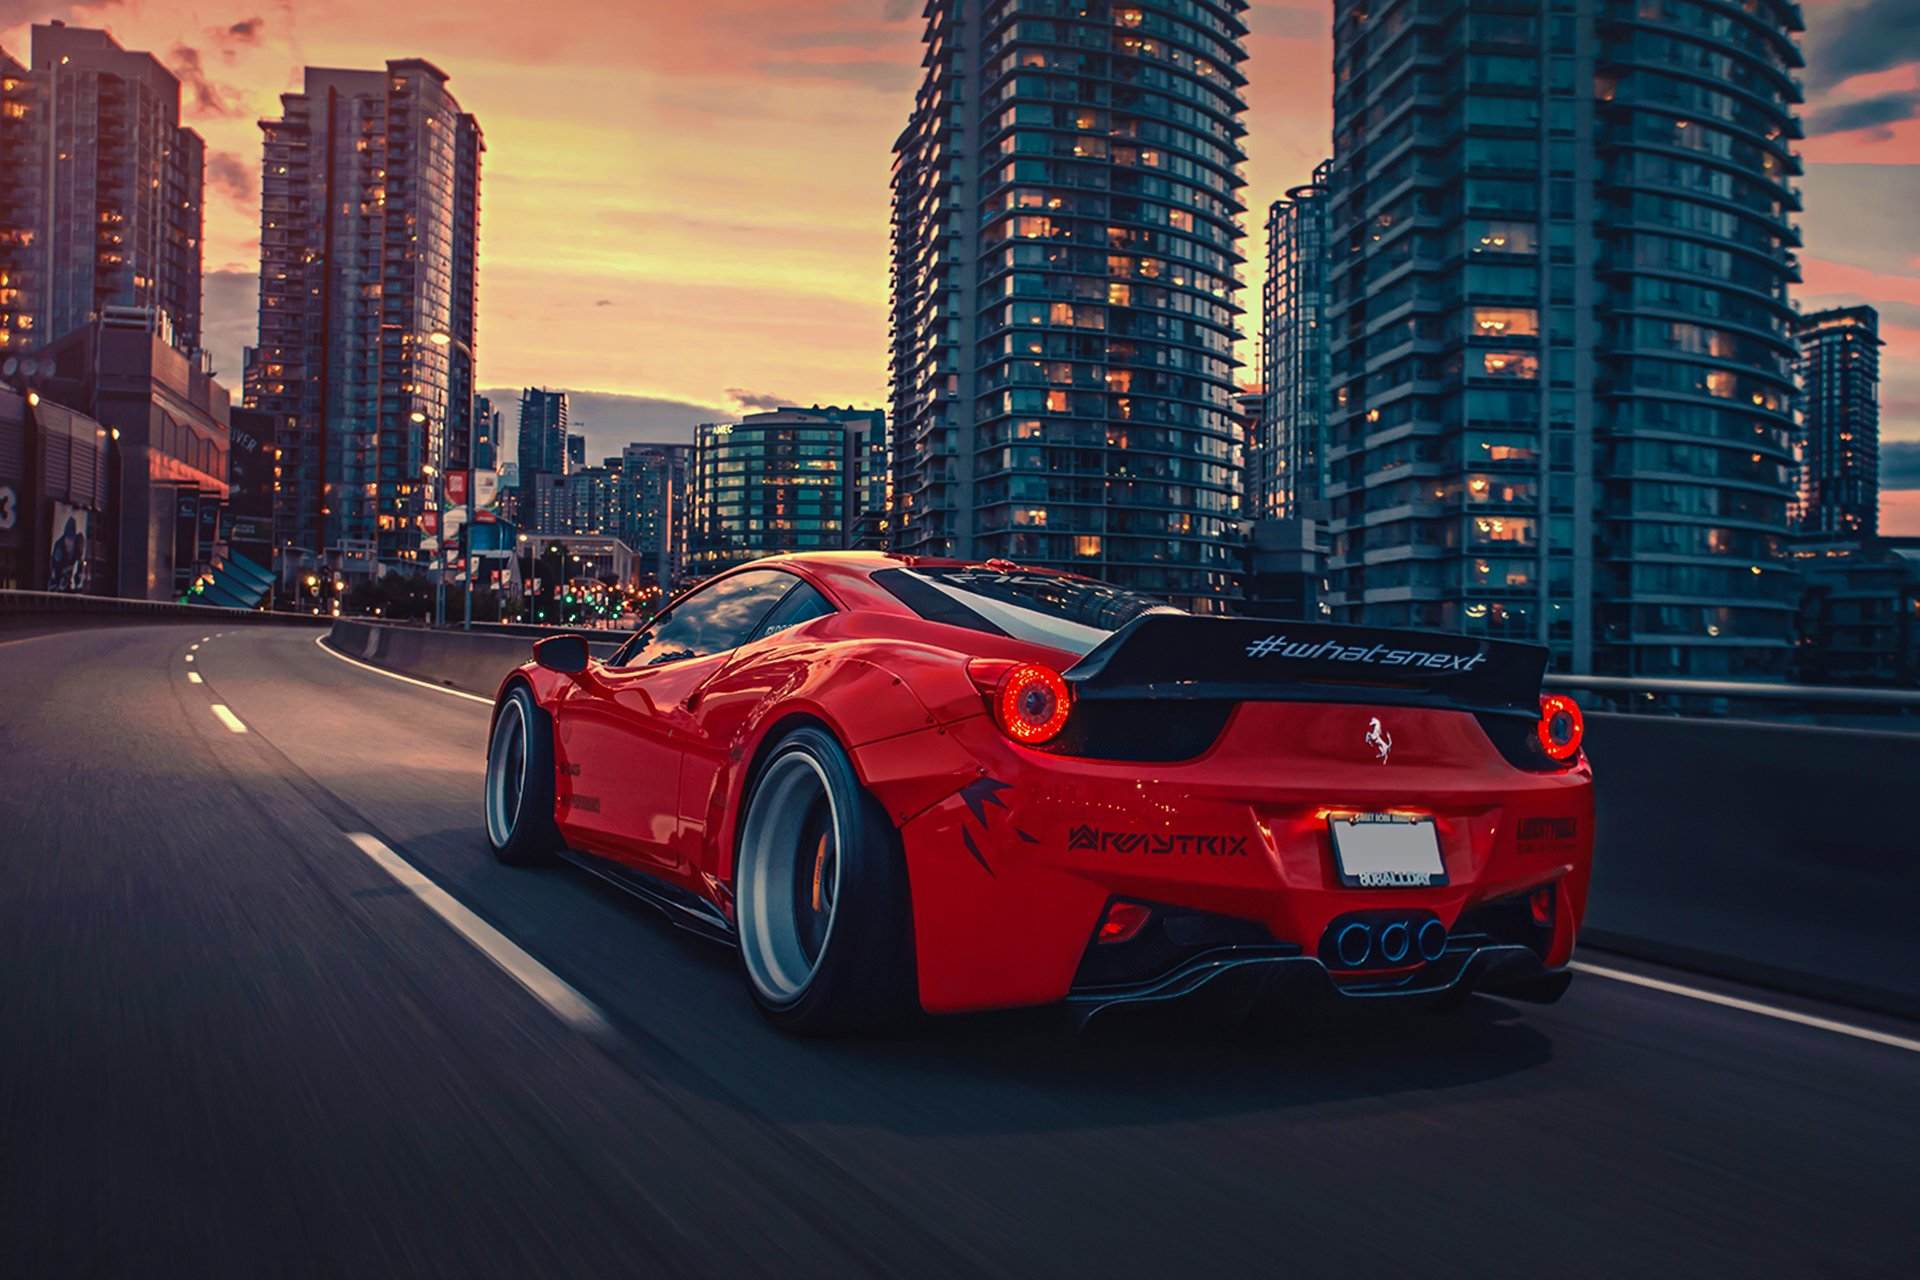 We've gathered more than 5 million images uploaded by our users and sorted them by the most popular ones. 4400 Red Car Hd Wallpapers Background Images